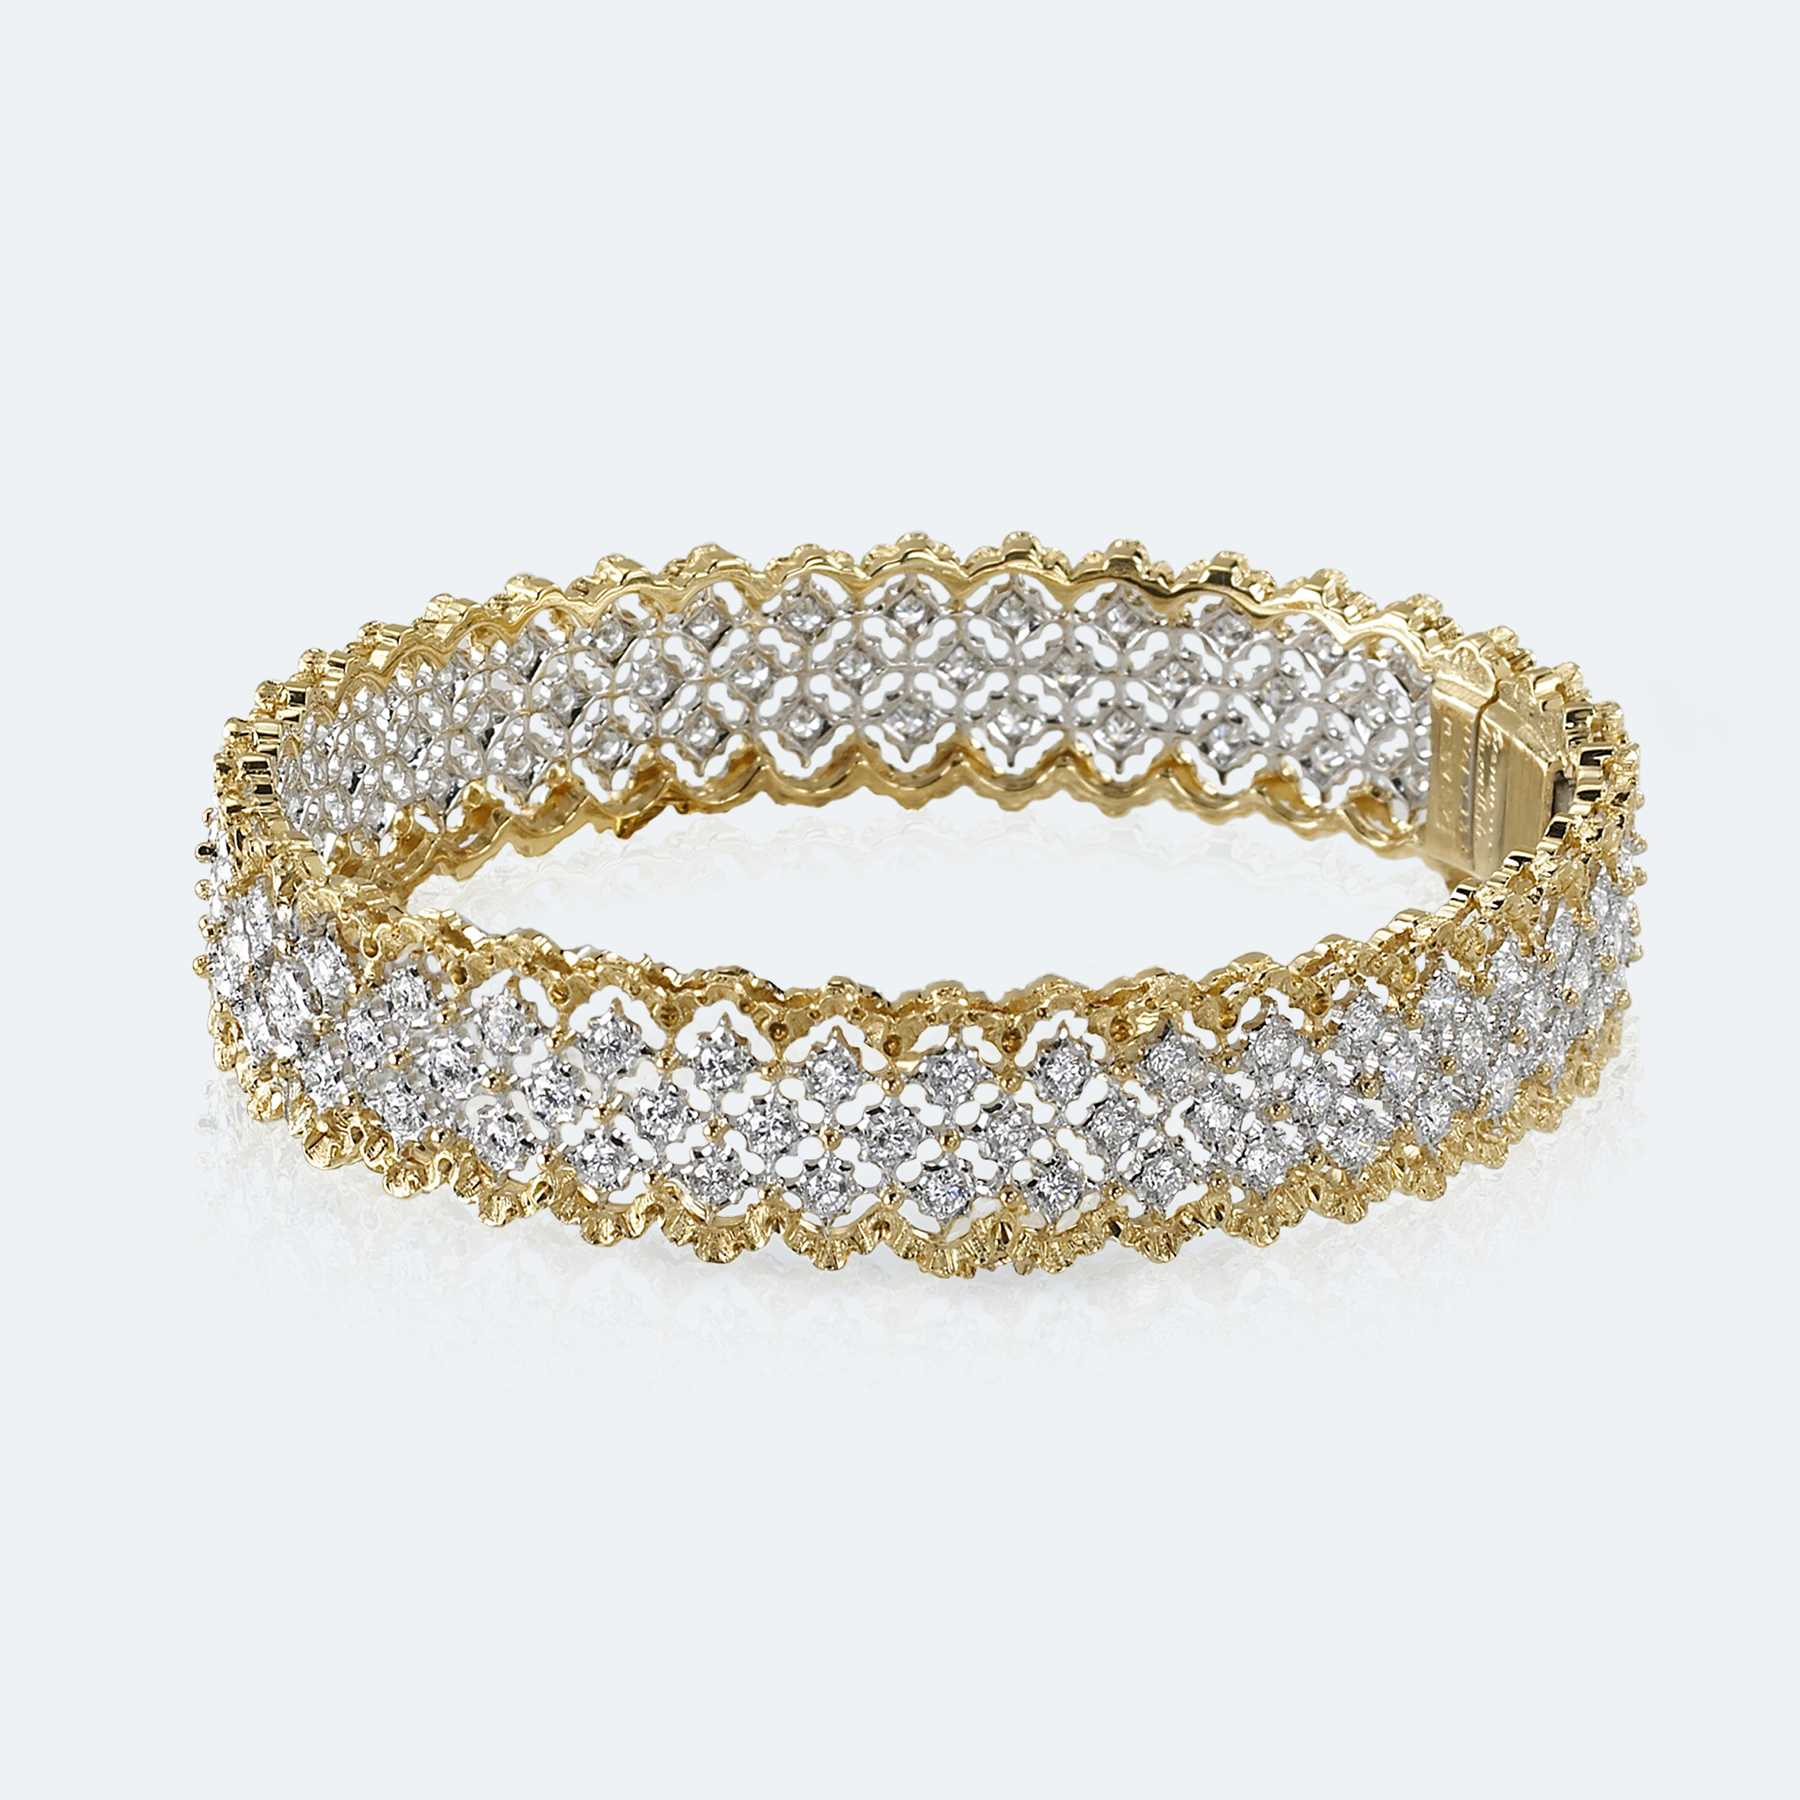 Buccellati Rombi Bangle Bracelet in White Gold Set with Diamonds